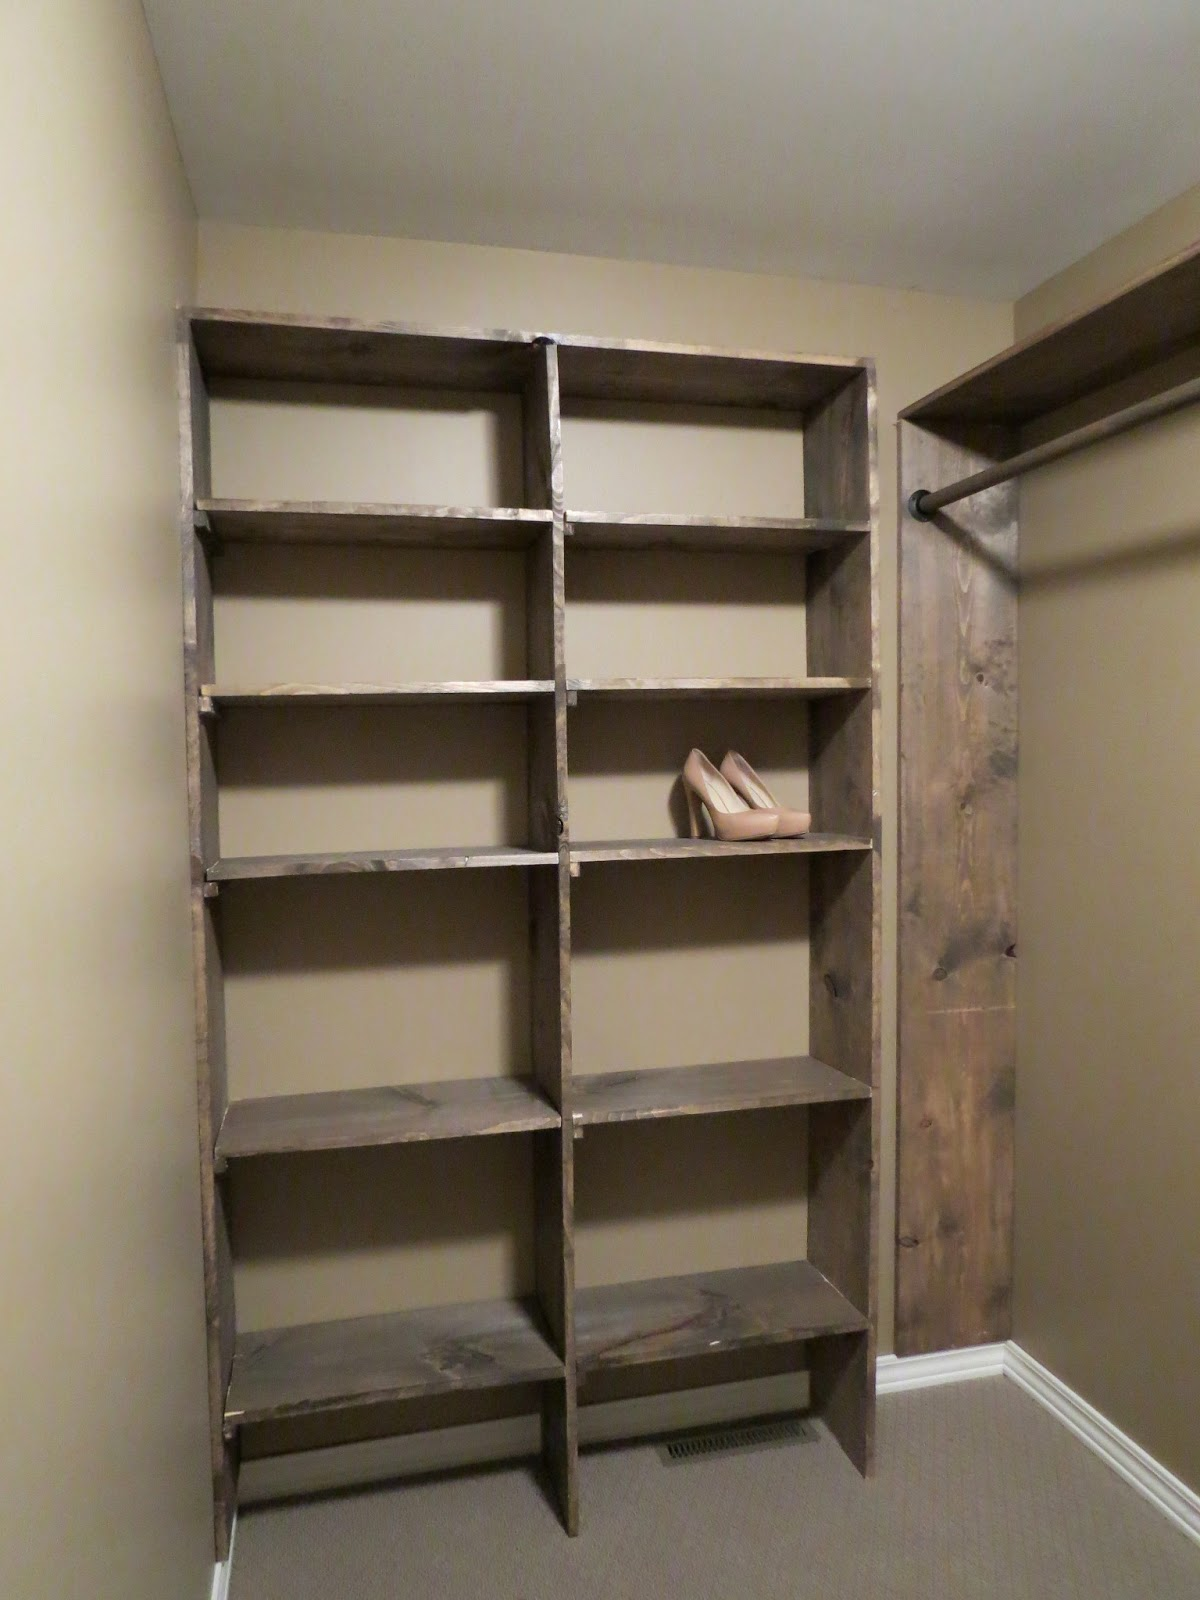 Letu0027s Just Build A House!: Walk In Closets: No More Living Out Of Laundry  Baskets!